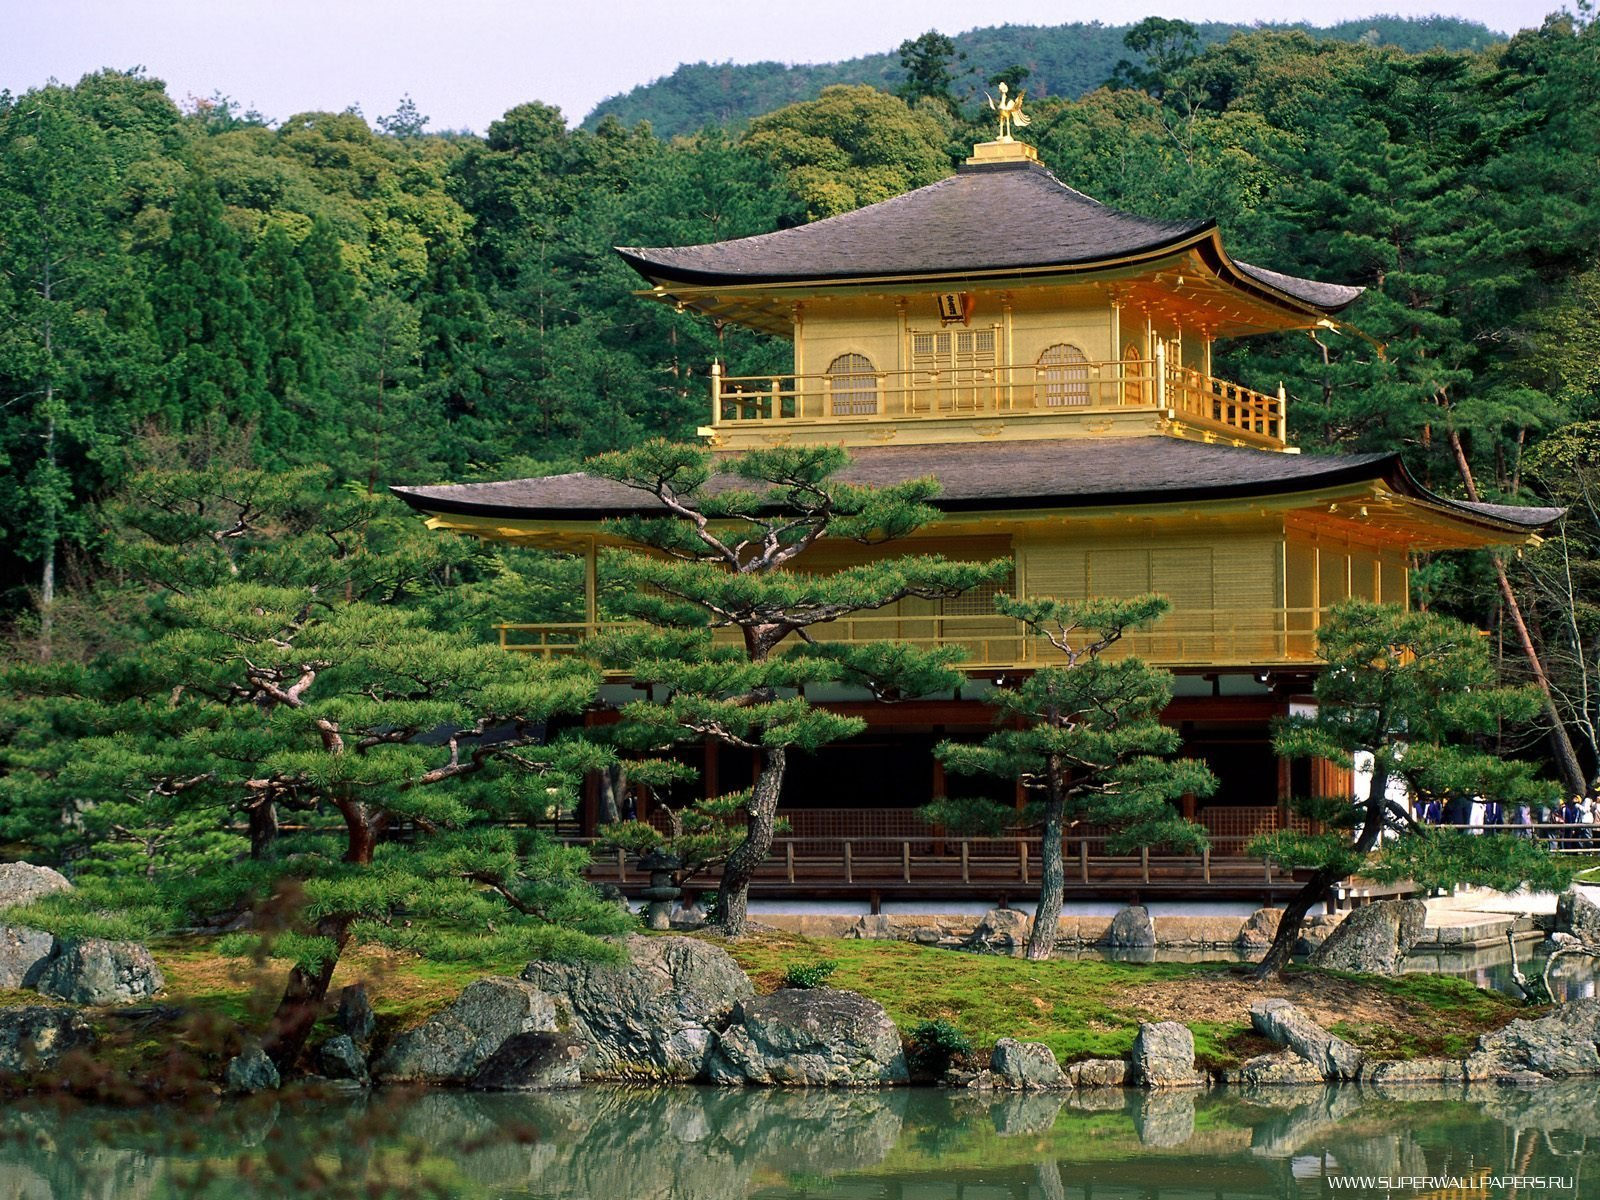 Japan images Japanese Landscape HD wallpaper and background photos